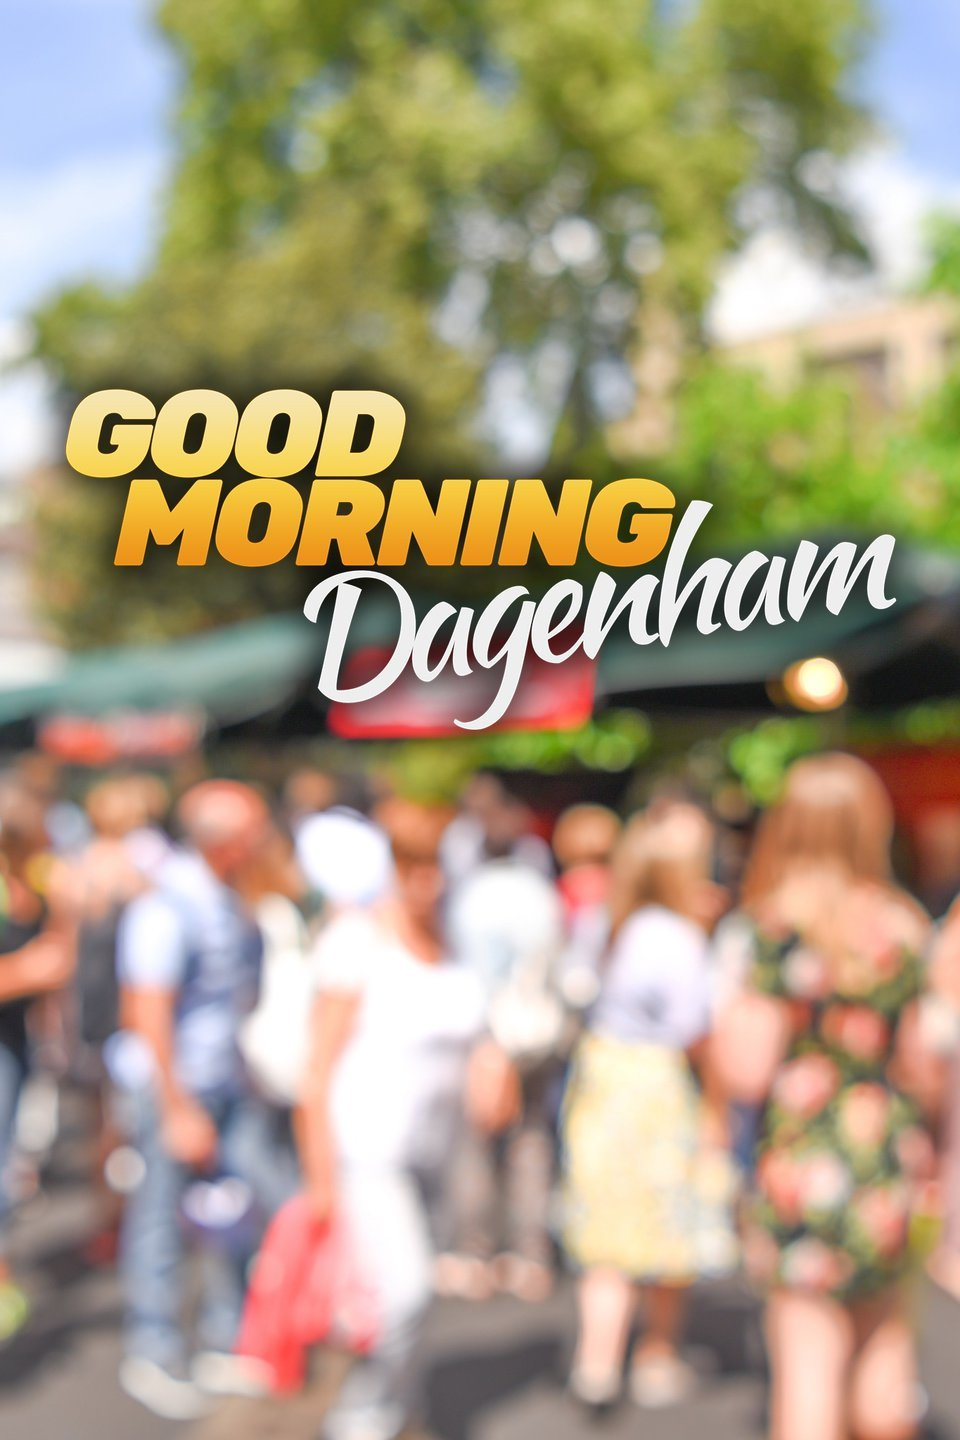 Good Morning Dagenham - Season 1